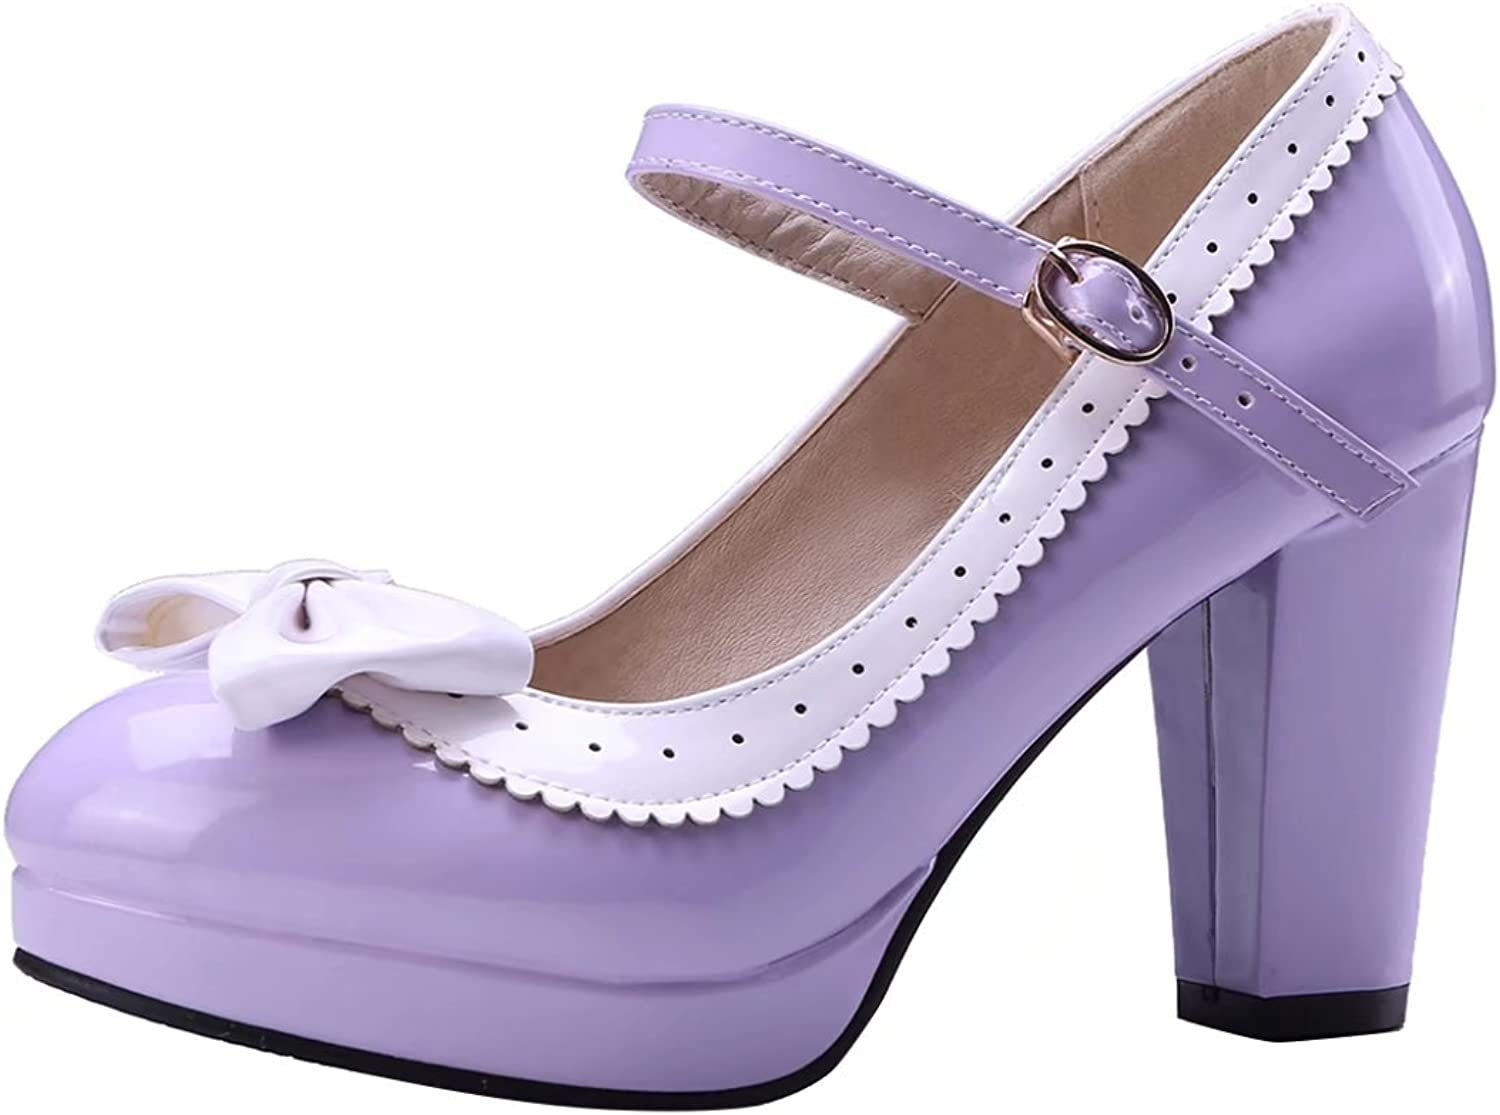 AIYOUMEI Women's Mary Jane Platform Ankle Strap Block Heel Pumps shoes with Bows